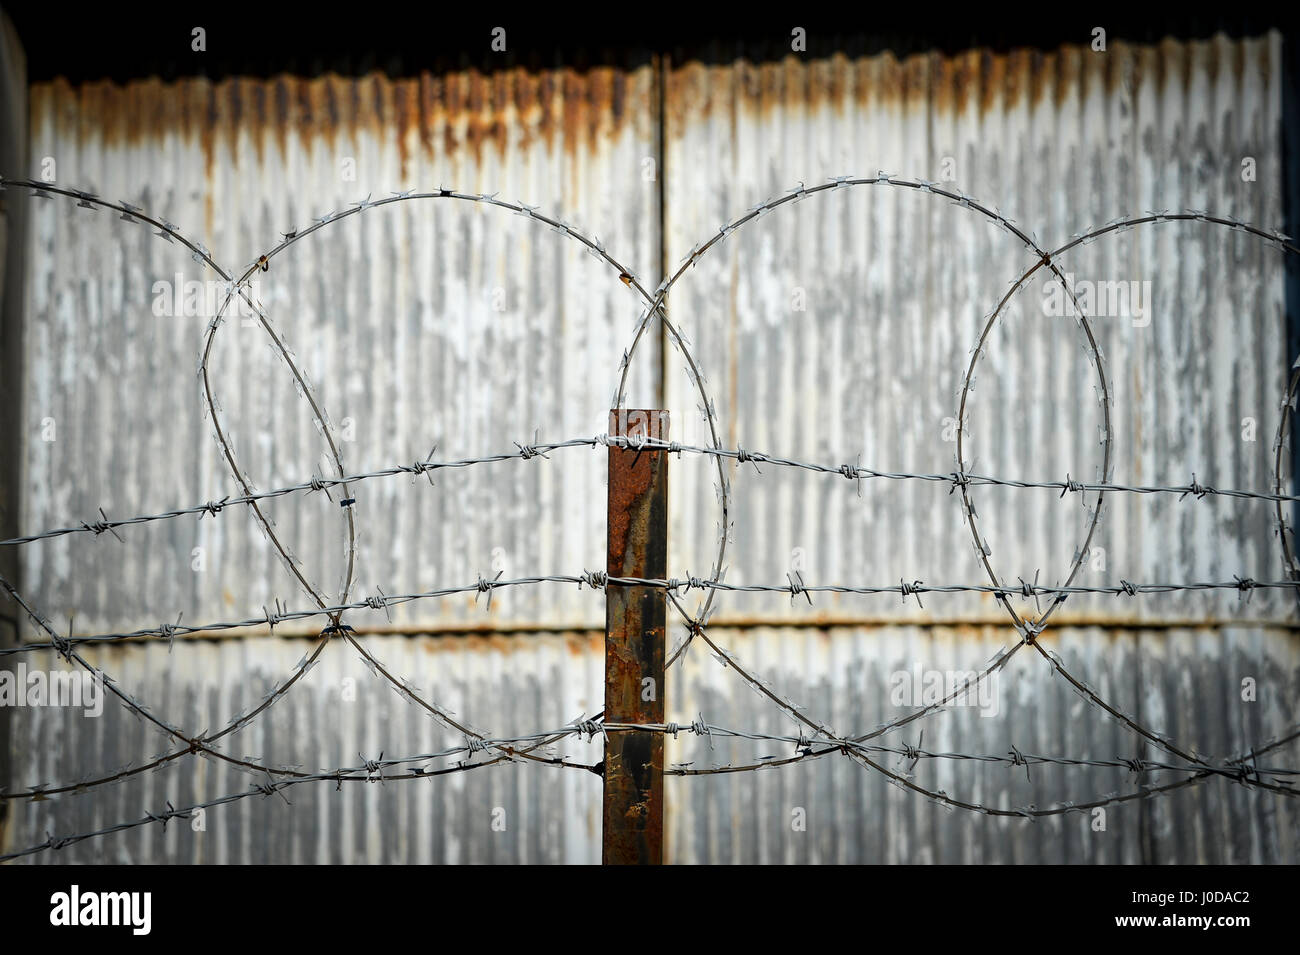 Industrial Fence Stock Photos & Industrial Fence Stock Images - Alamy